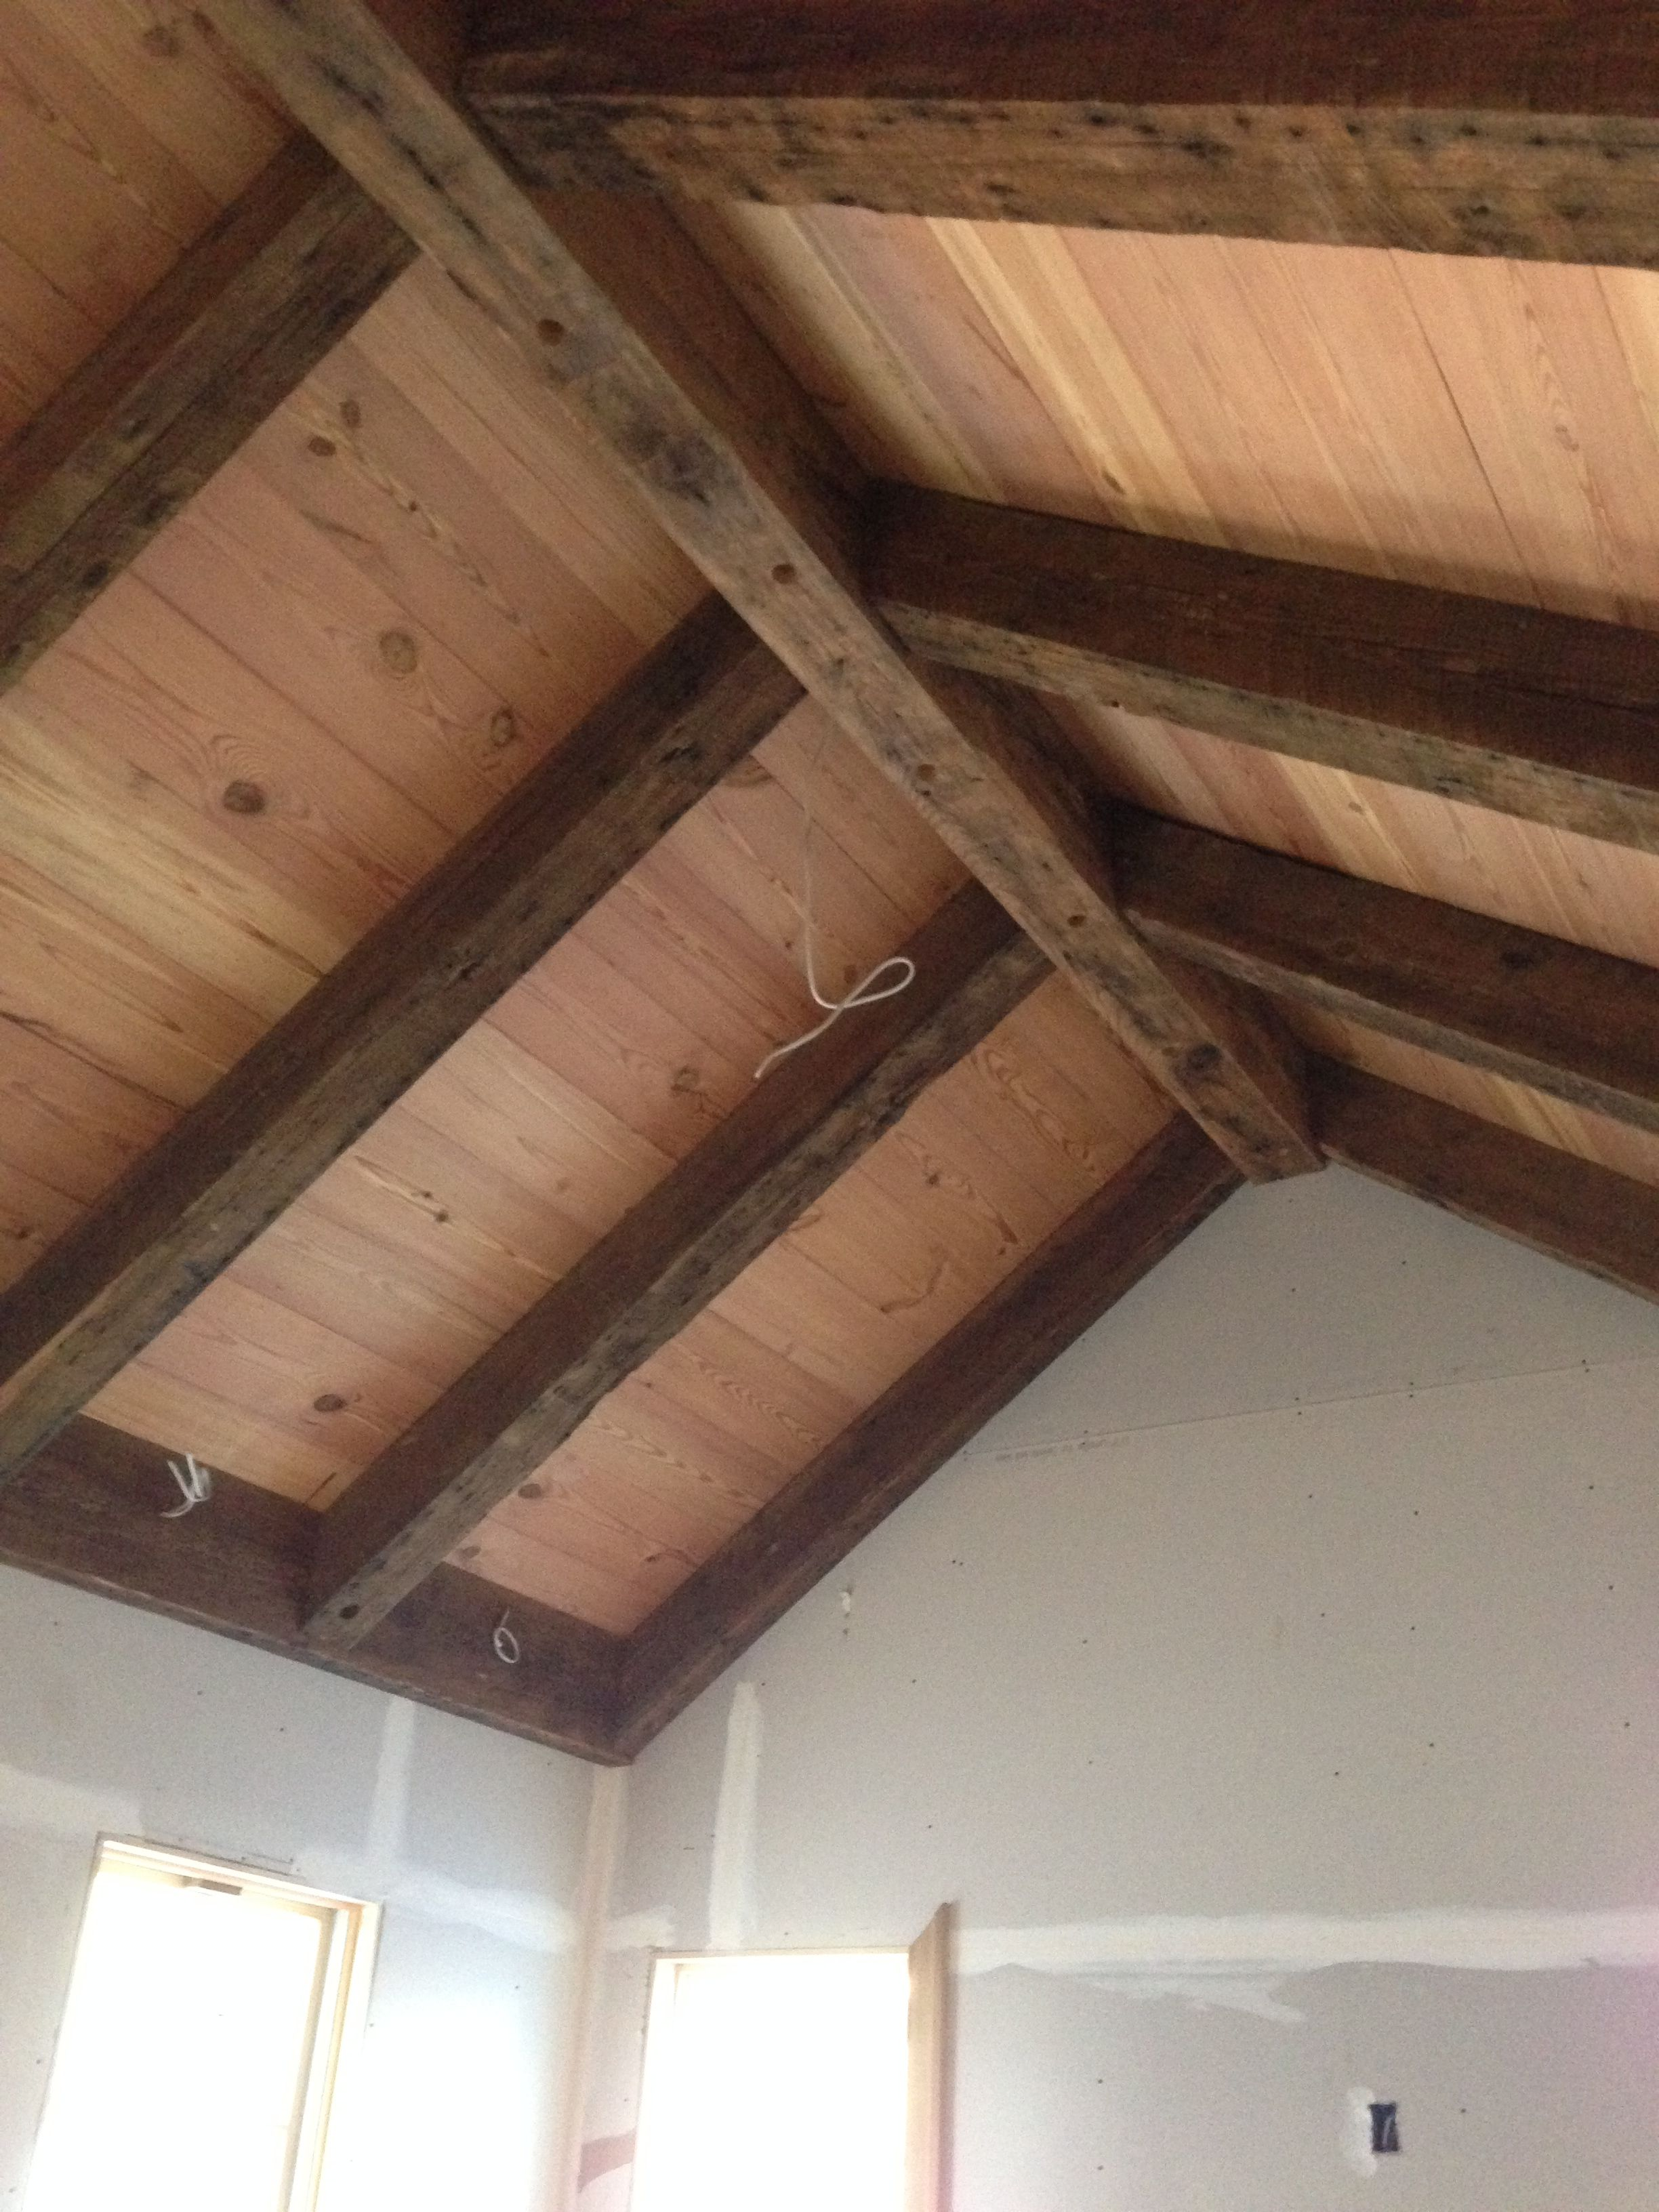 The ceiling material is 1x10 antique heart pine that was cut